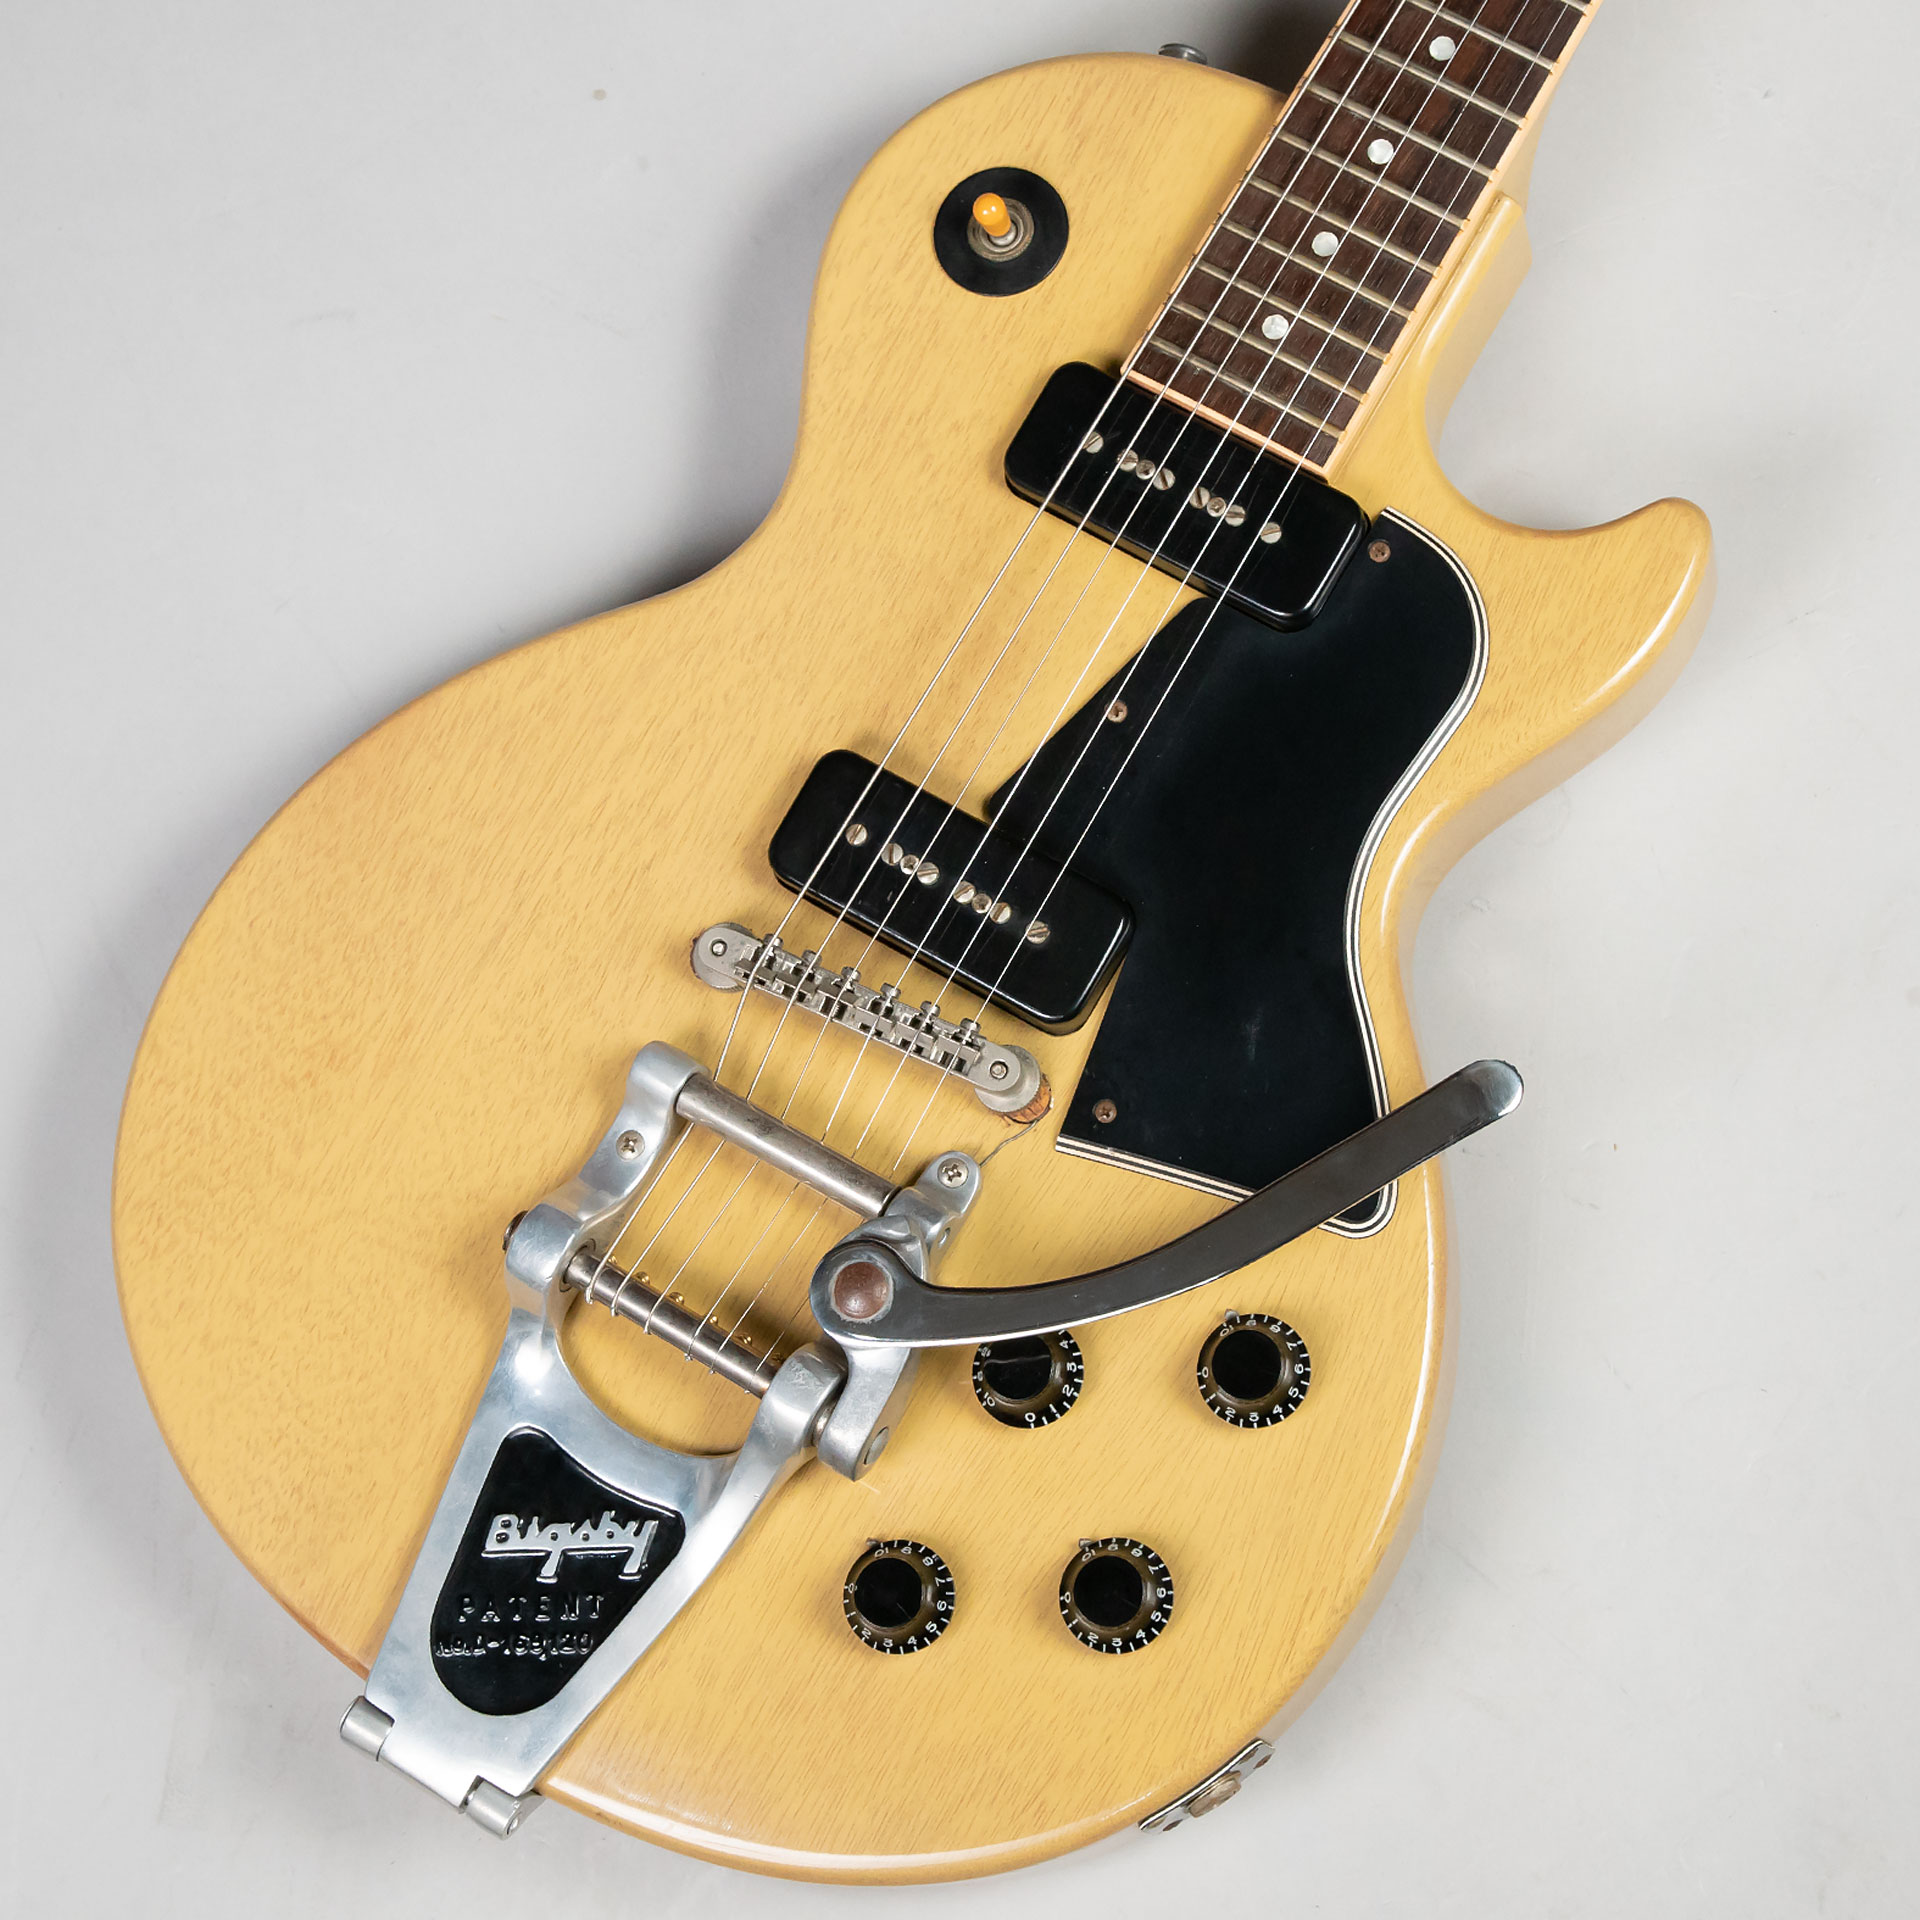 Historic Collection 1960 Les Paul Special w/Bigsby(改造品)のボディトップ-アップ画像